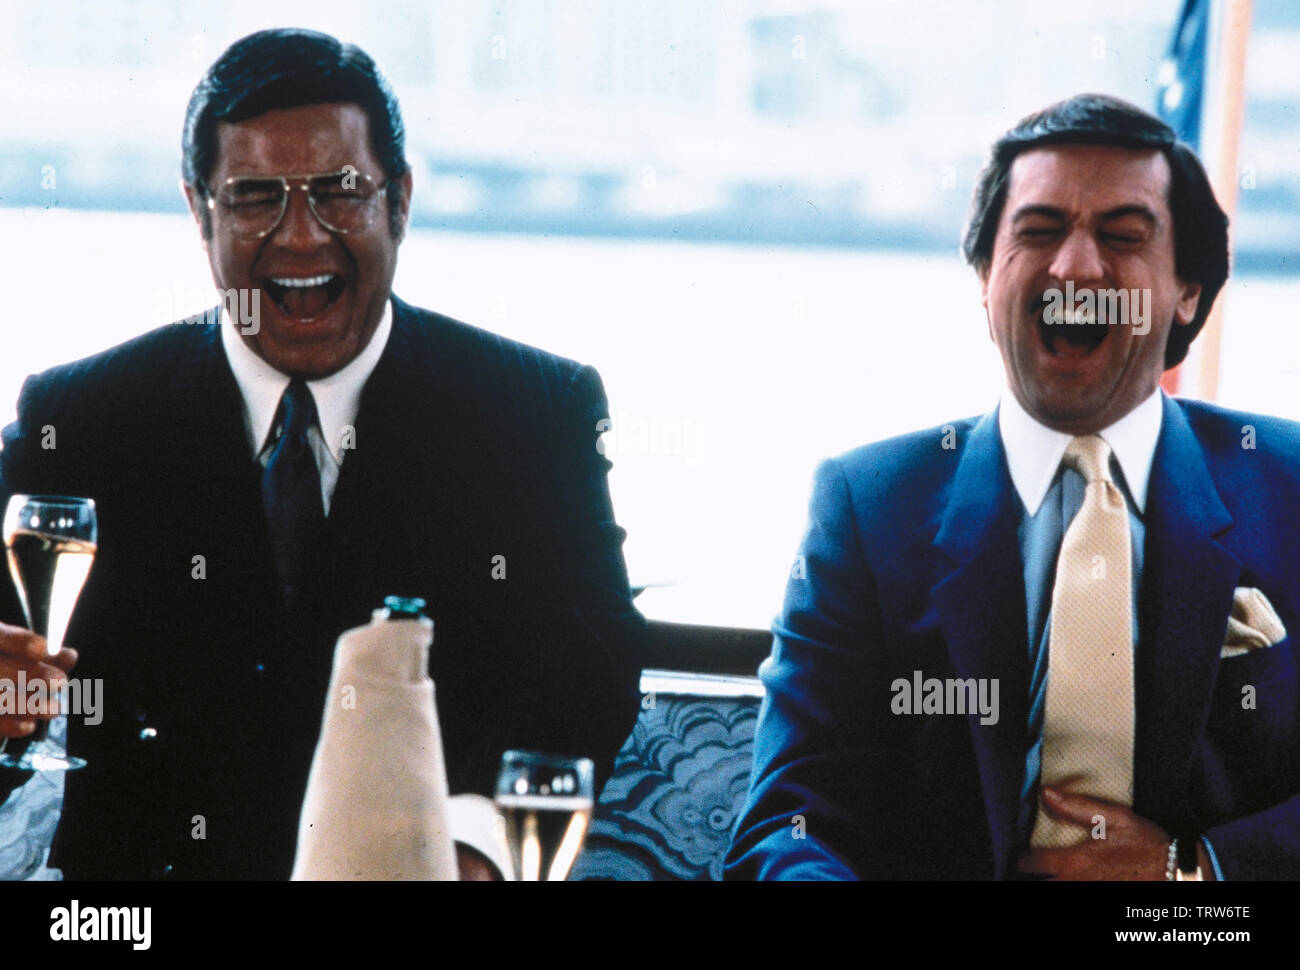 JERRY LEWIS and ROBERT DE NIRO in THE KING OF COMEDY (1982). Copyright: Editorial use only. No merchandising or book covers. This is a publicly distributed handout. Access rights only, no license of copyright provided. Only to be reproduced in conjunction with promotion of this film. Credit: 20TH CENTURY FOX / Album - Stock Image